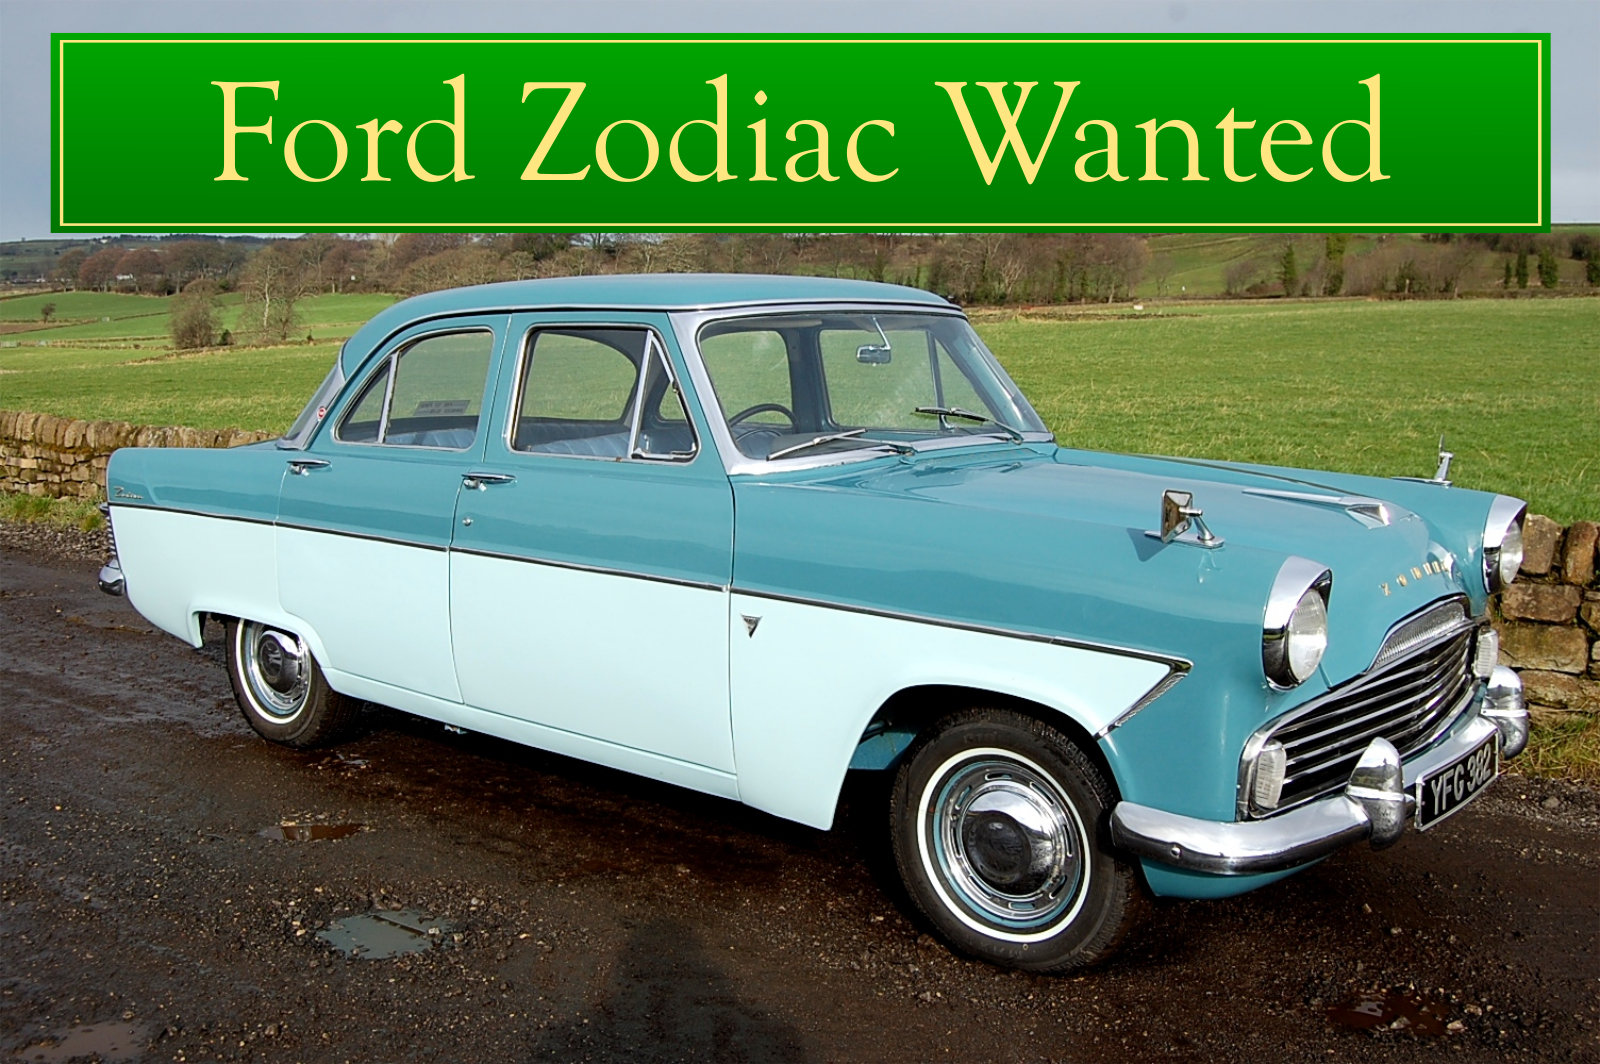 FORD ZEPHYR WANTED, CLASSIC CARS WANTED, IMMEDIATE PAYMENT Wanted (picture 3 of 6)